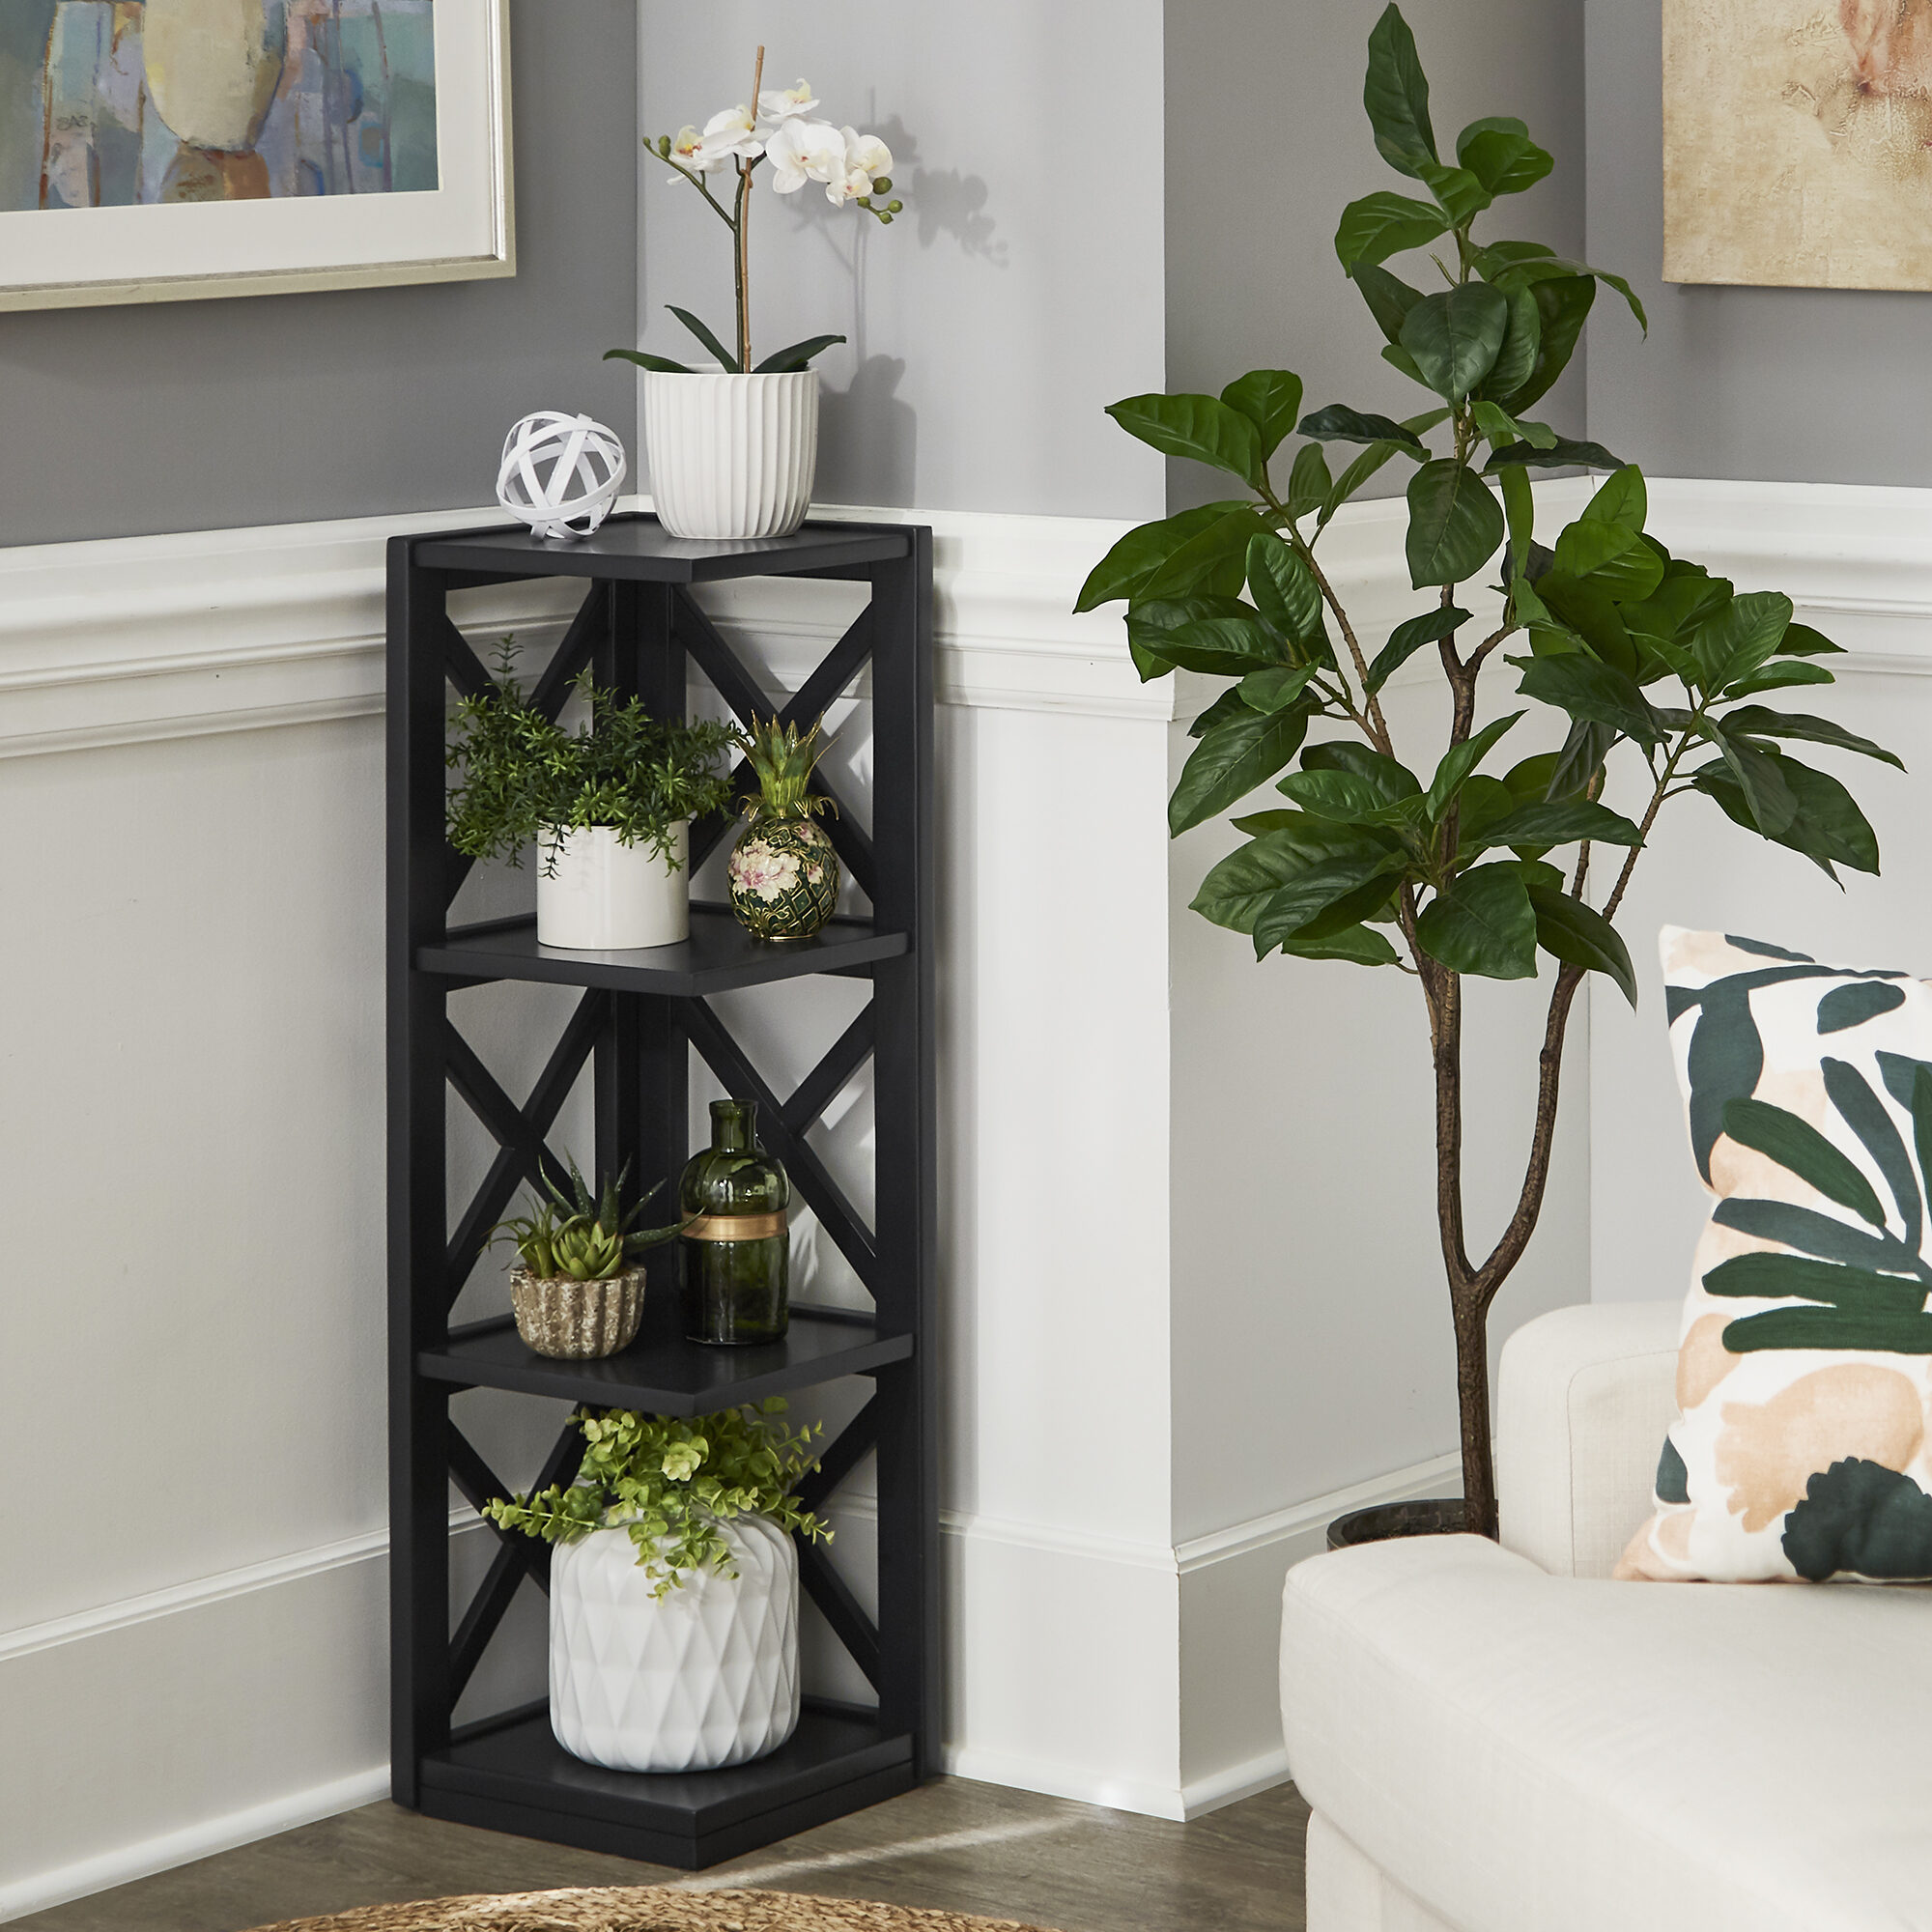 Corner bookcases are tiny but mighty pieces of small space furniture! Our Kelsey X-Frame 3-Shelf Bookcase by iNSPIRE Q Classic is perfect for filling those nooks and crannies without sacrificing floor space.